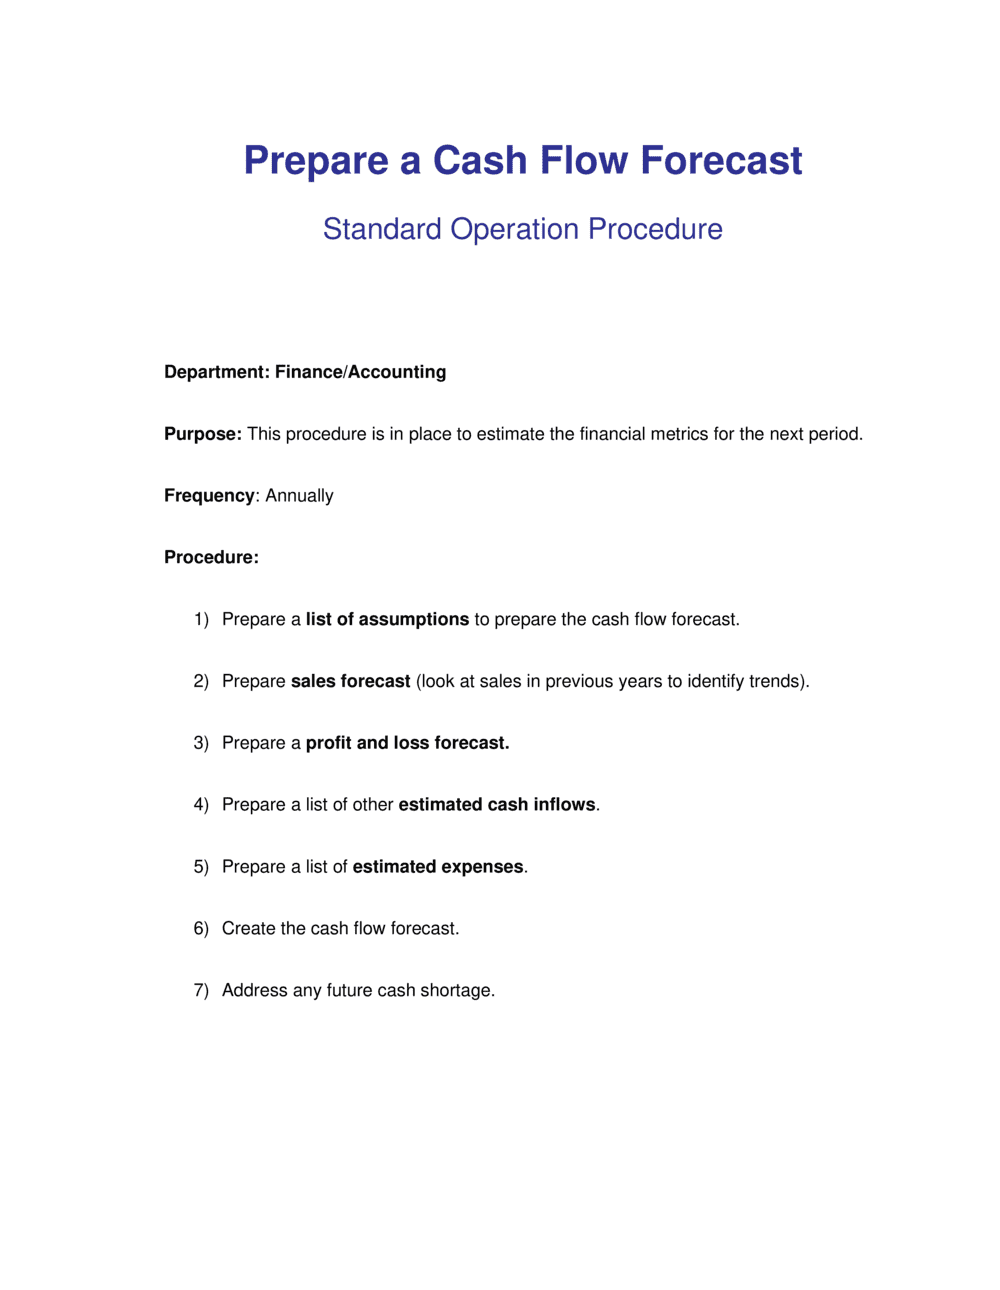 Business-in-a-Box's How to Prepare a Cash Flow Forecast